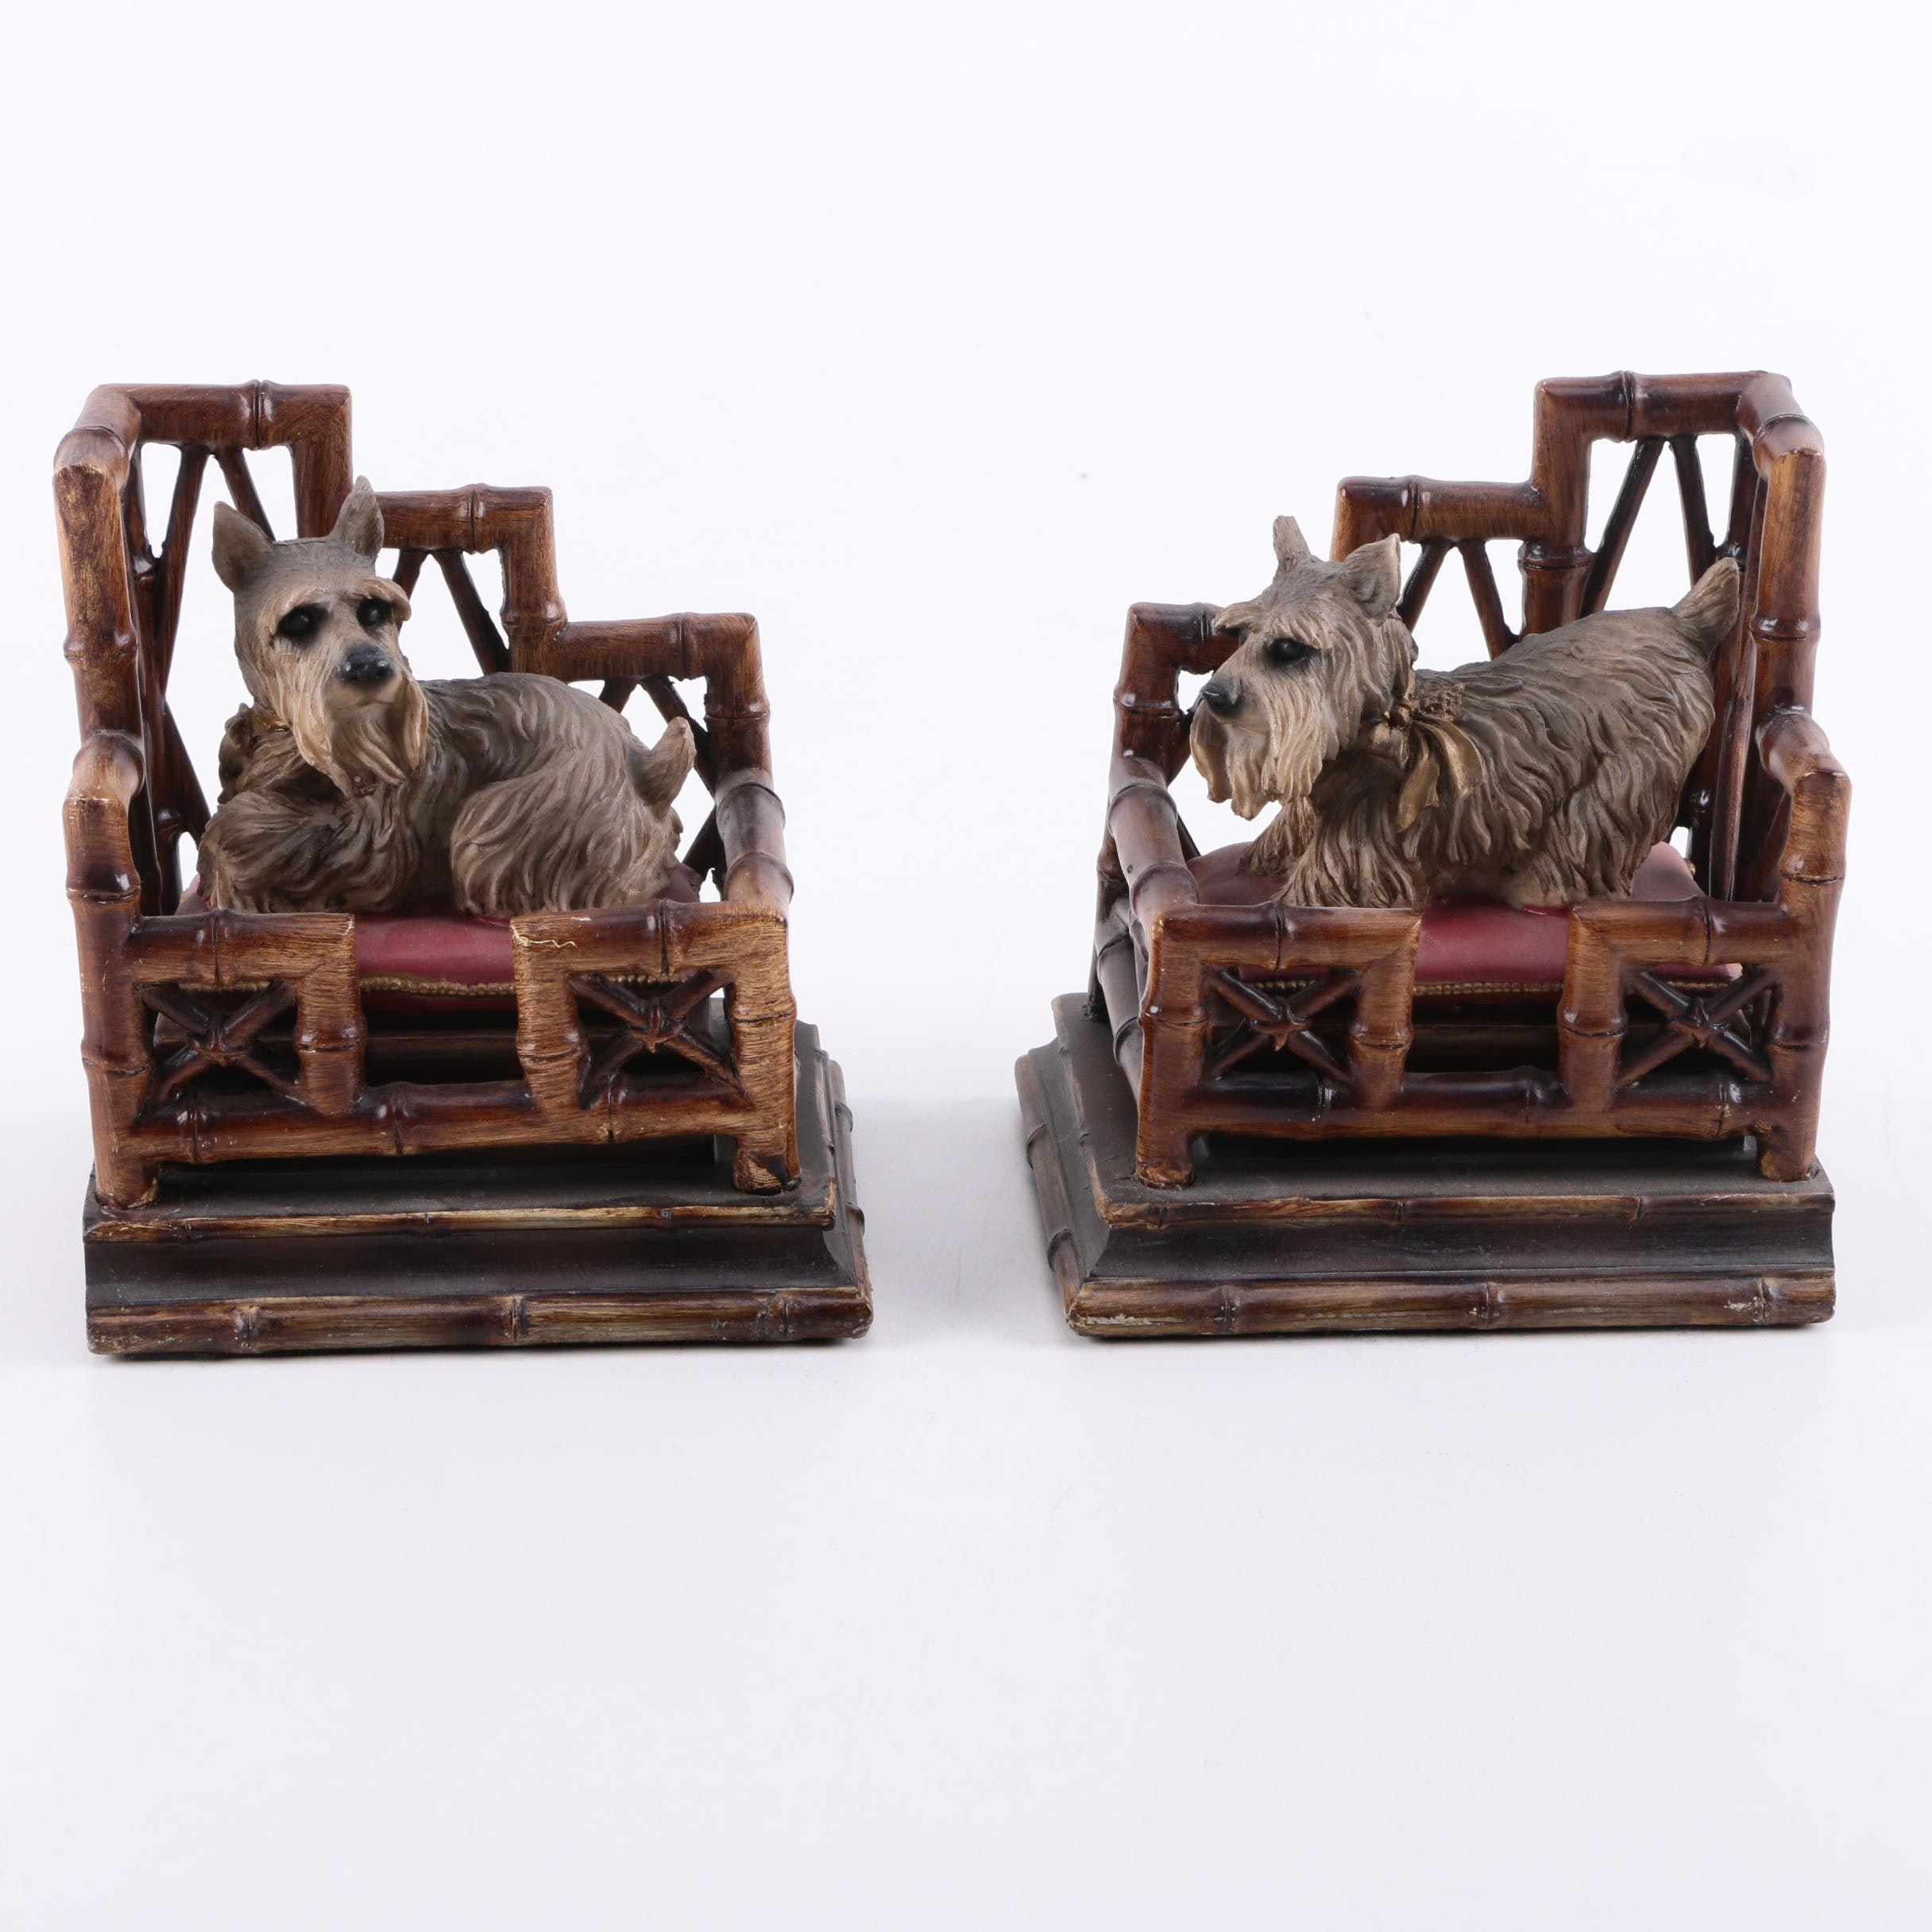 Pair of Schnauzer Bookends